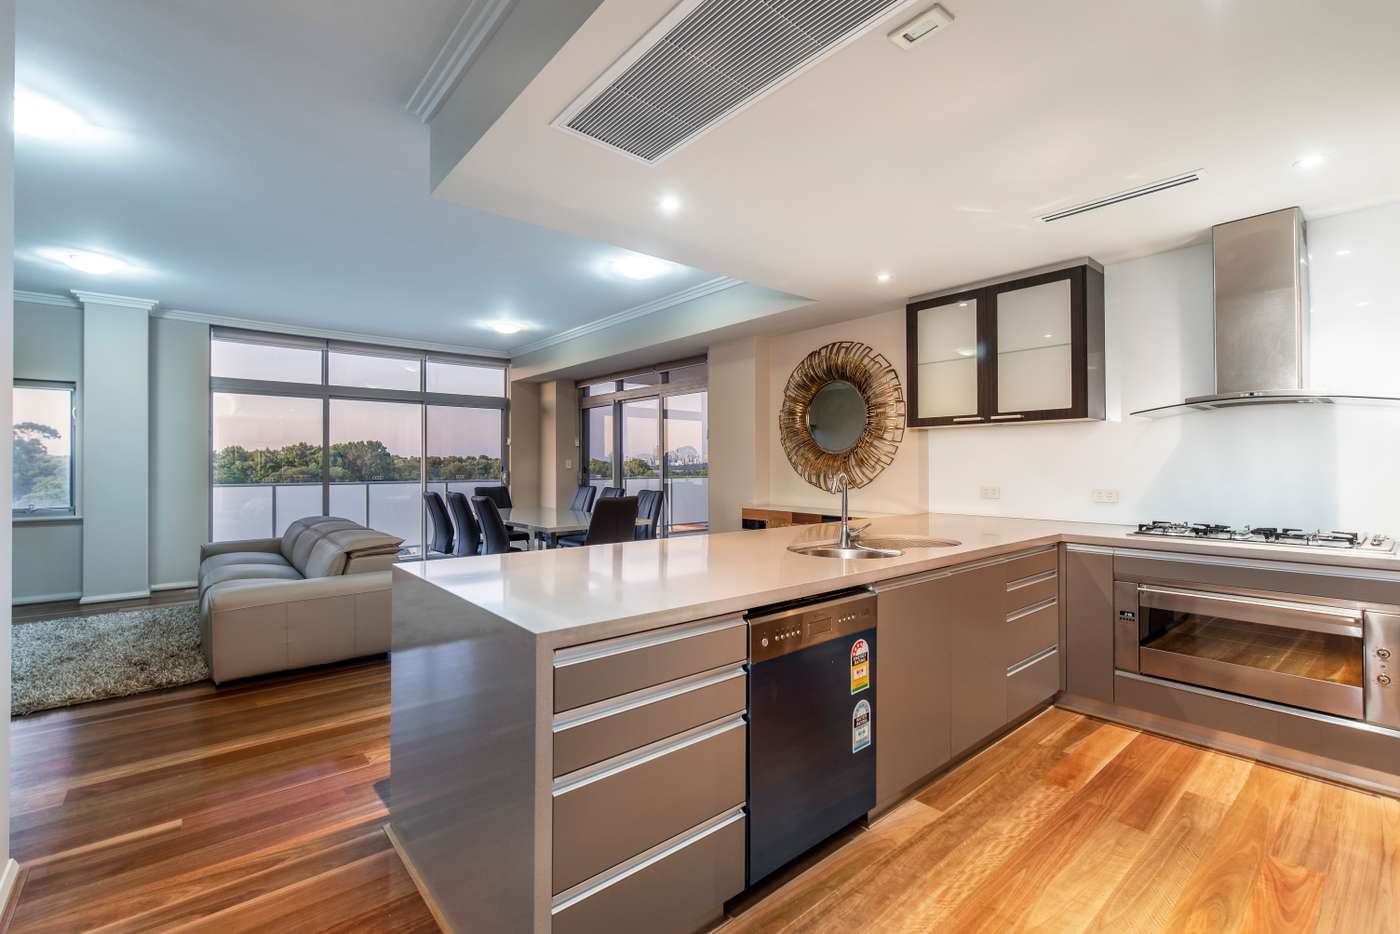 Main view of Homely apartment listing, 21/880 Canning Highway, Applecross WA 6153